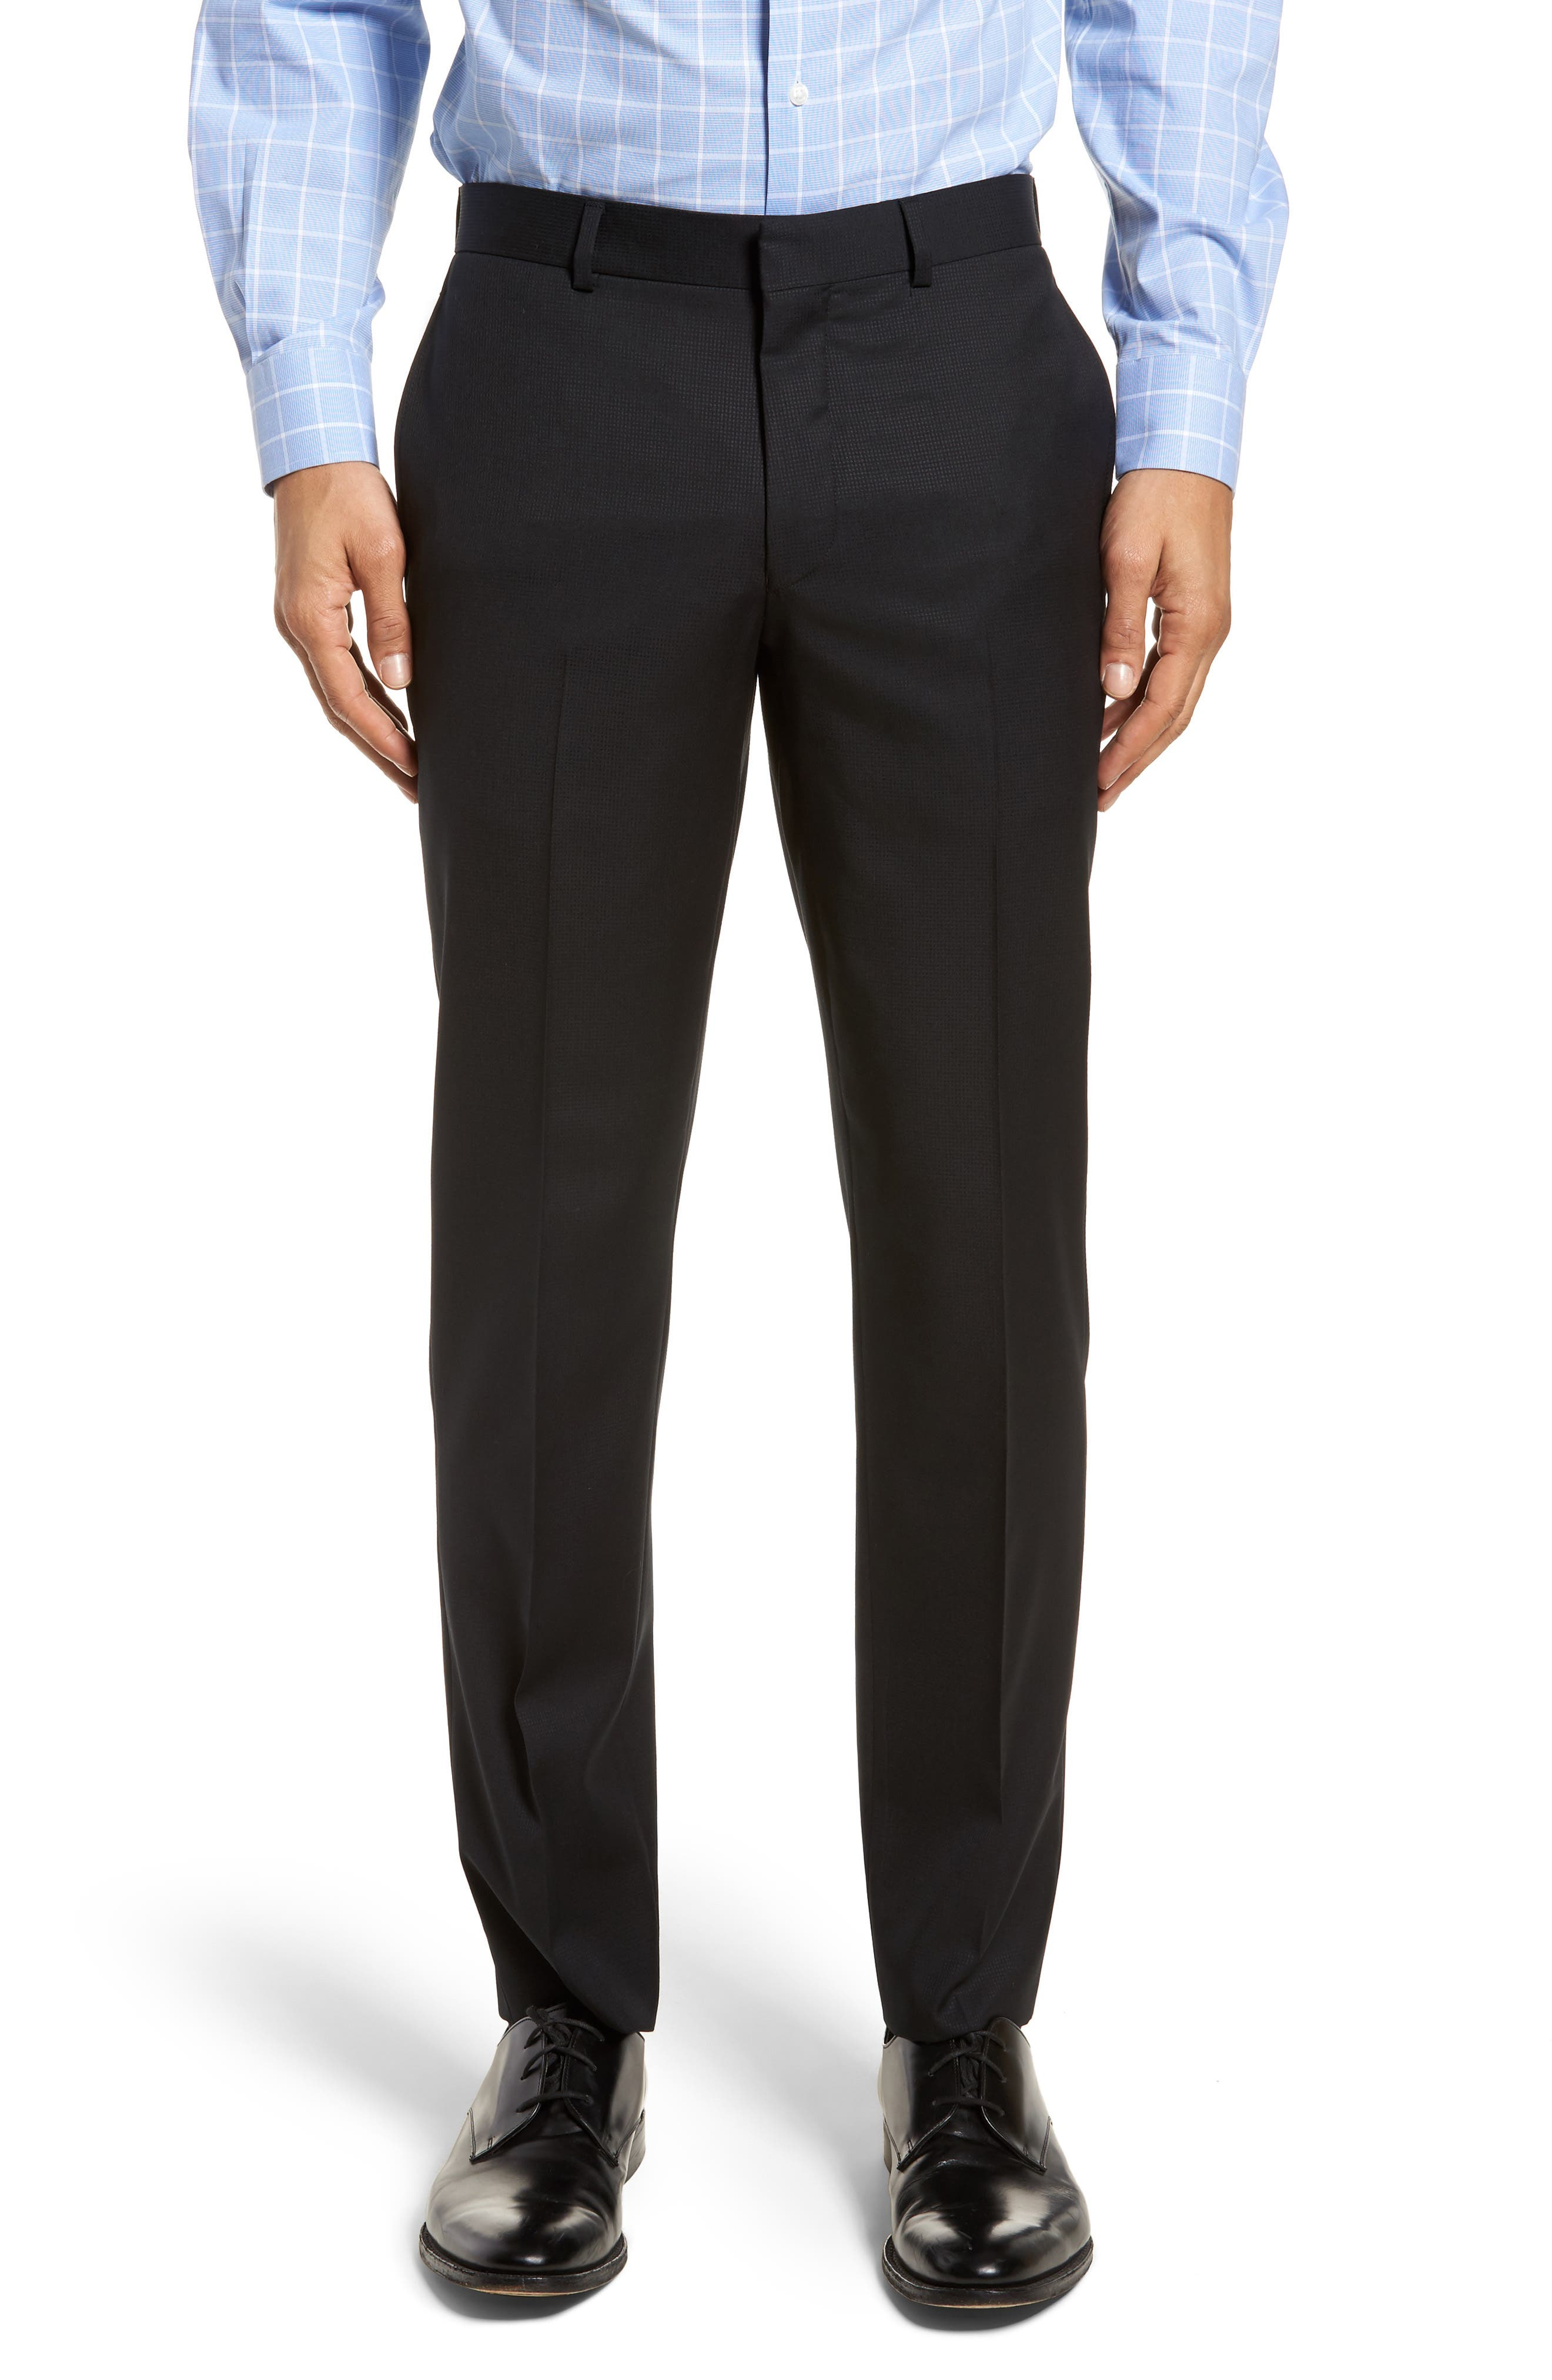 Roger Extra Slim Fit Solid Wool Suit,                             Alternate thumbnail 6, color,                             001